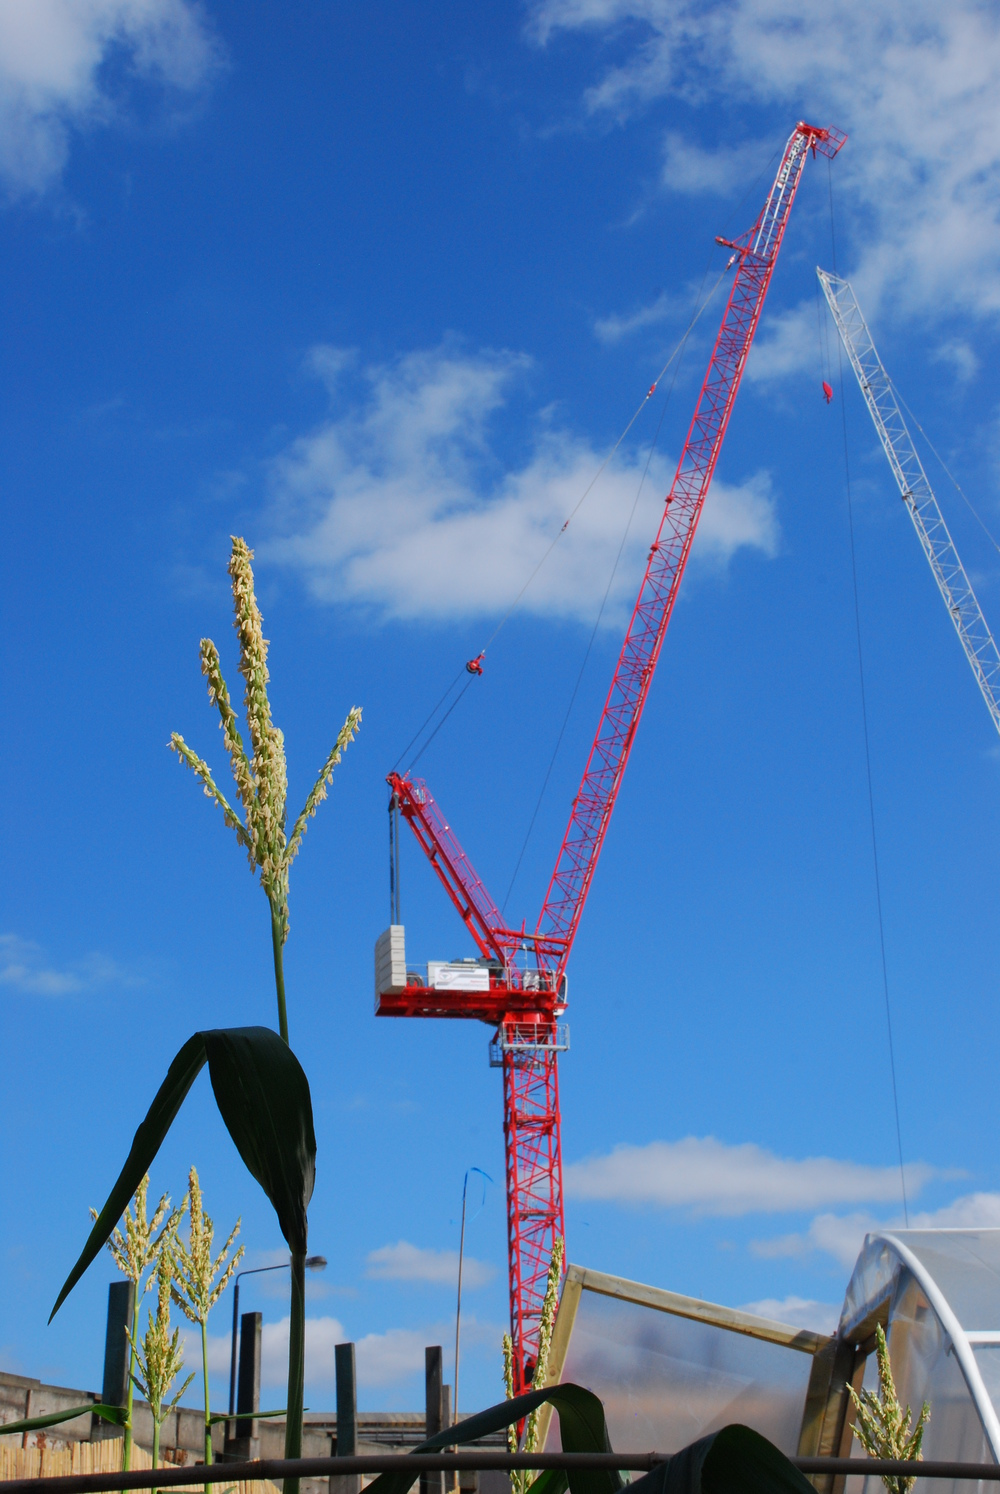 Crane-and-Grain-Photo-IC-Works.JPG